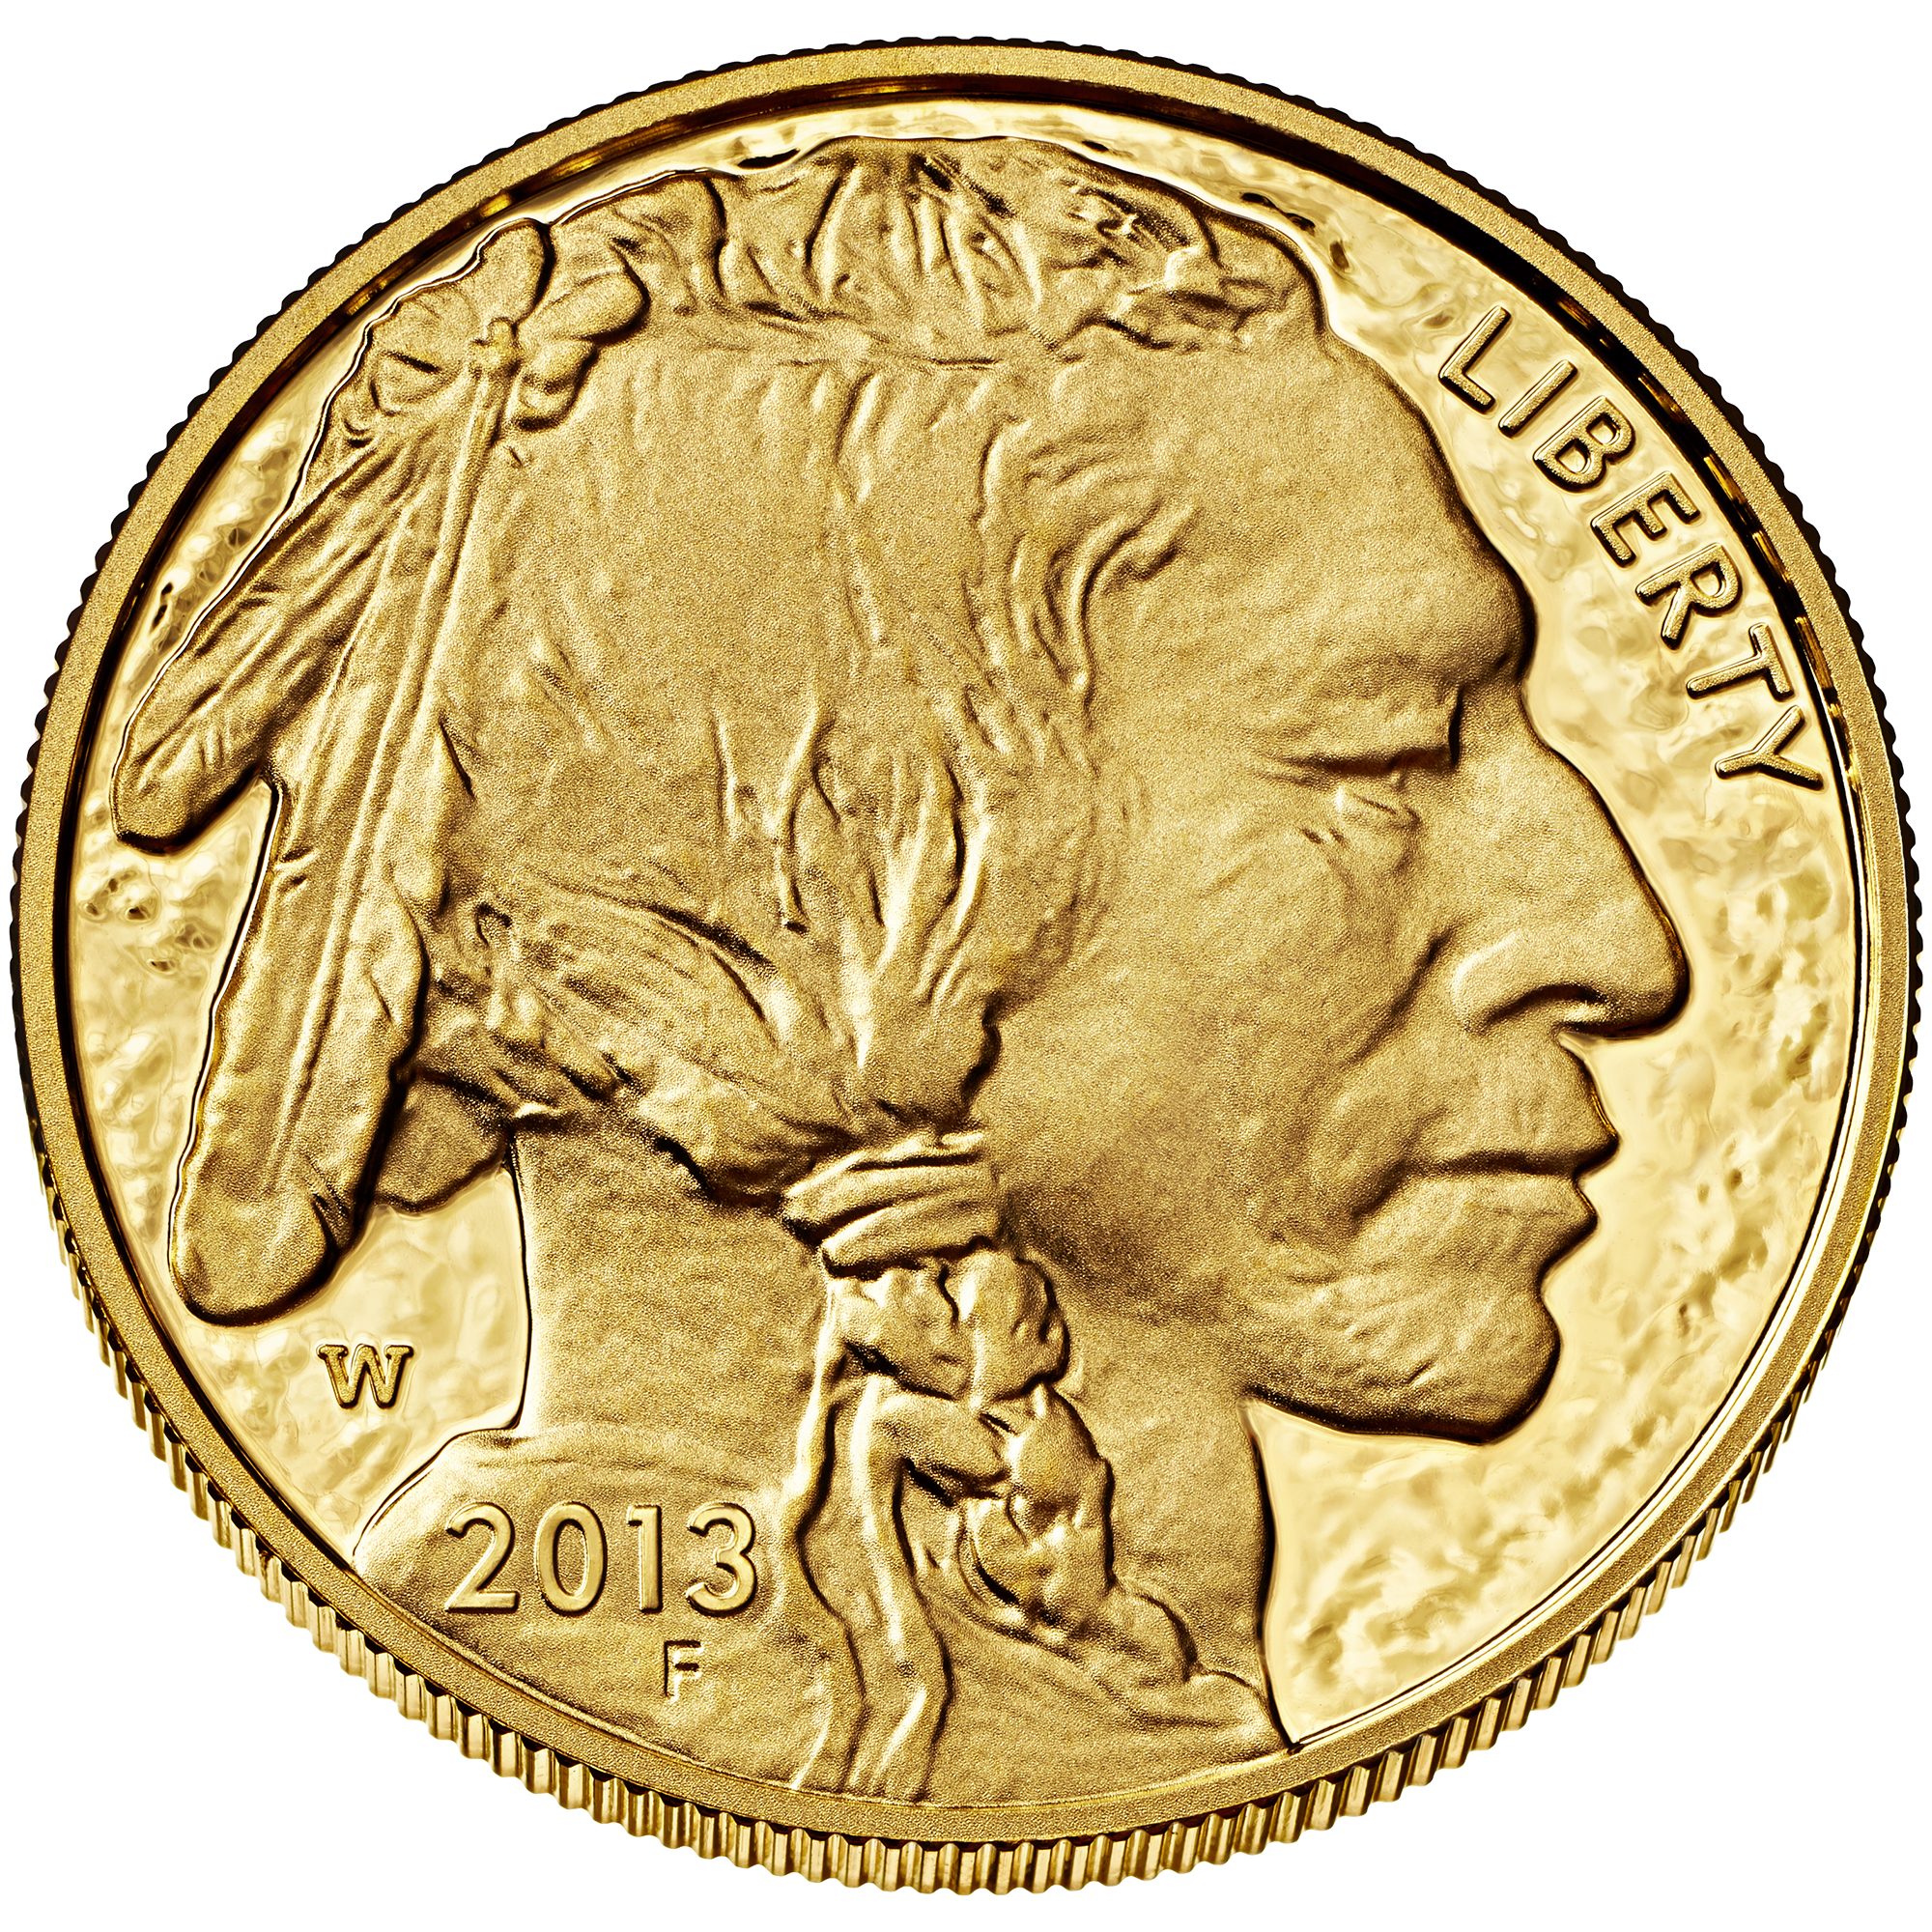 American Buffalo Coin Wikipedia